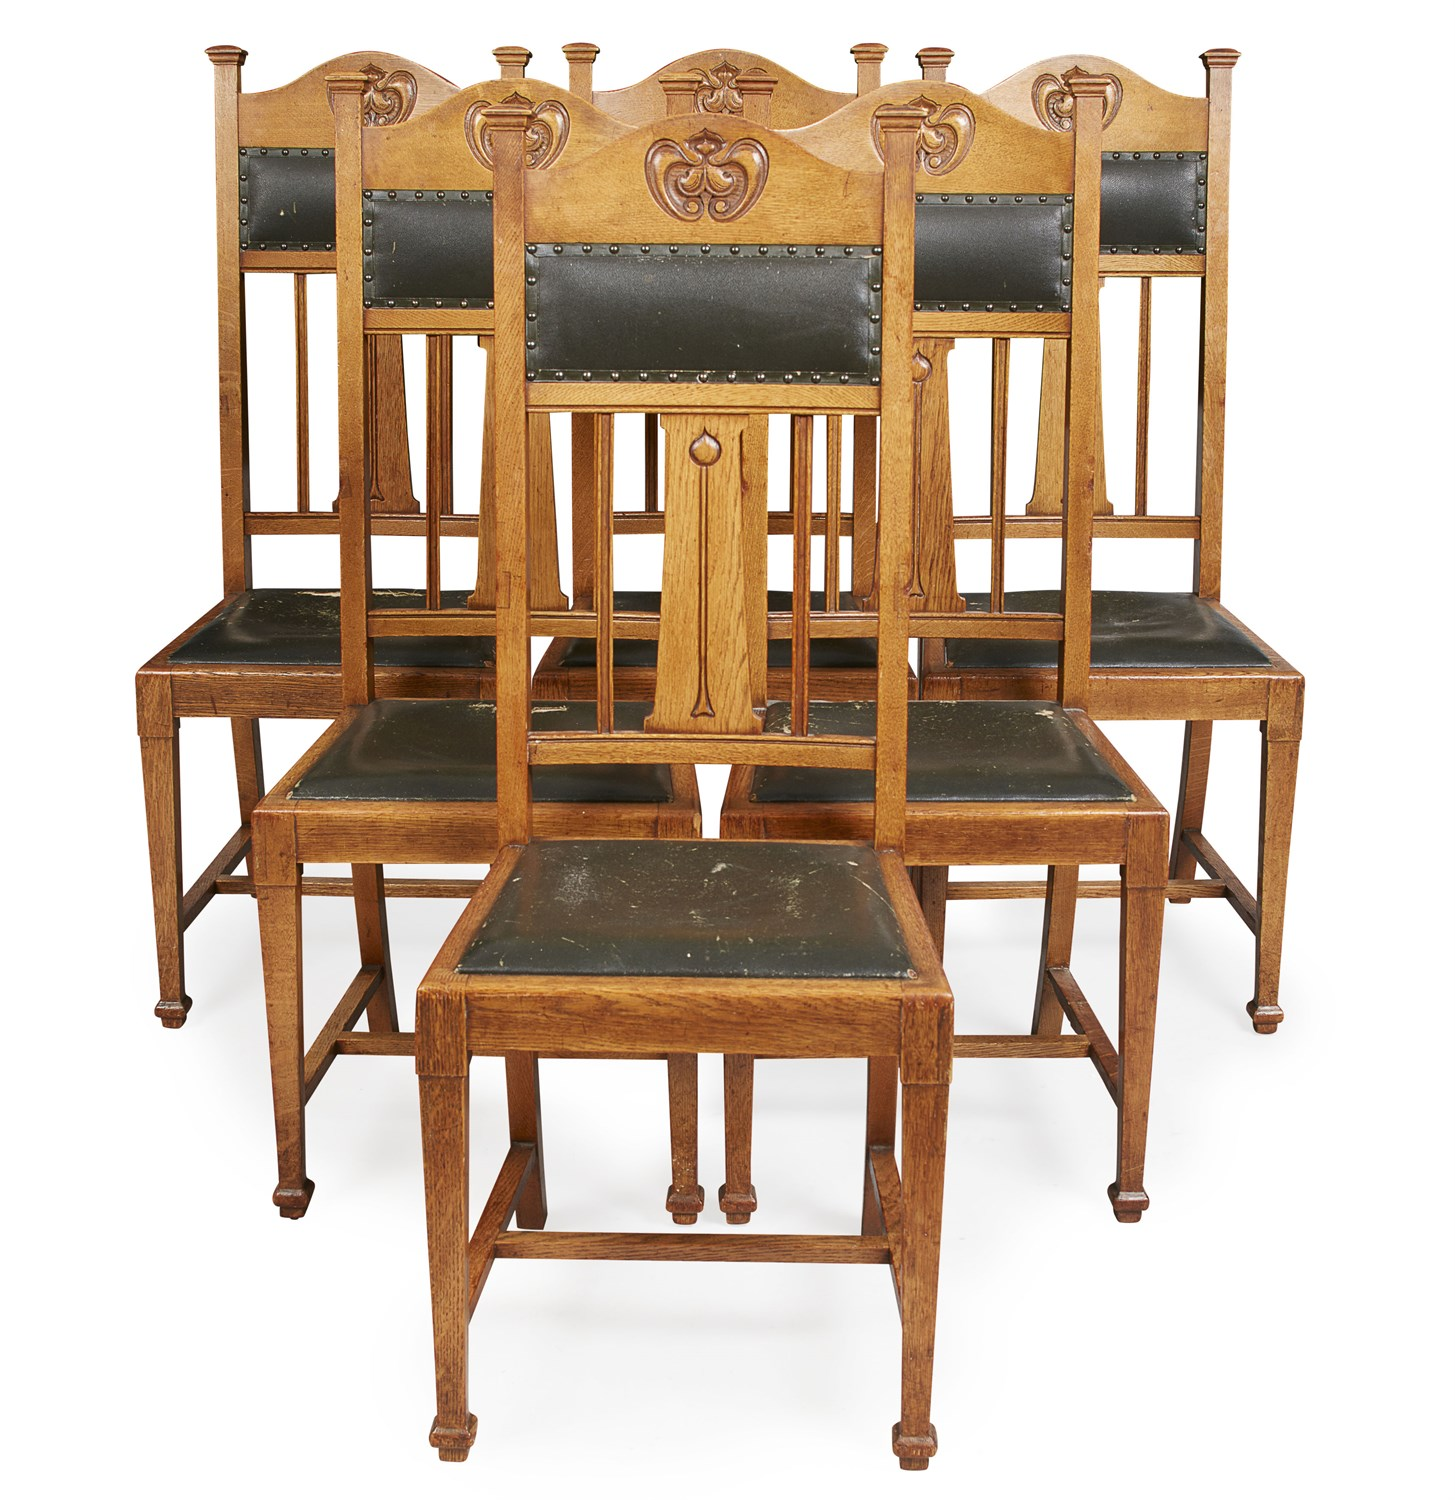 Fabulous Lot 263 Set Of Six Art Nouveau Oak Dining Chairs Caraccident5 Cool Chair Designs And Ideas Caraccident5Info